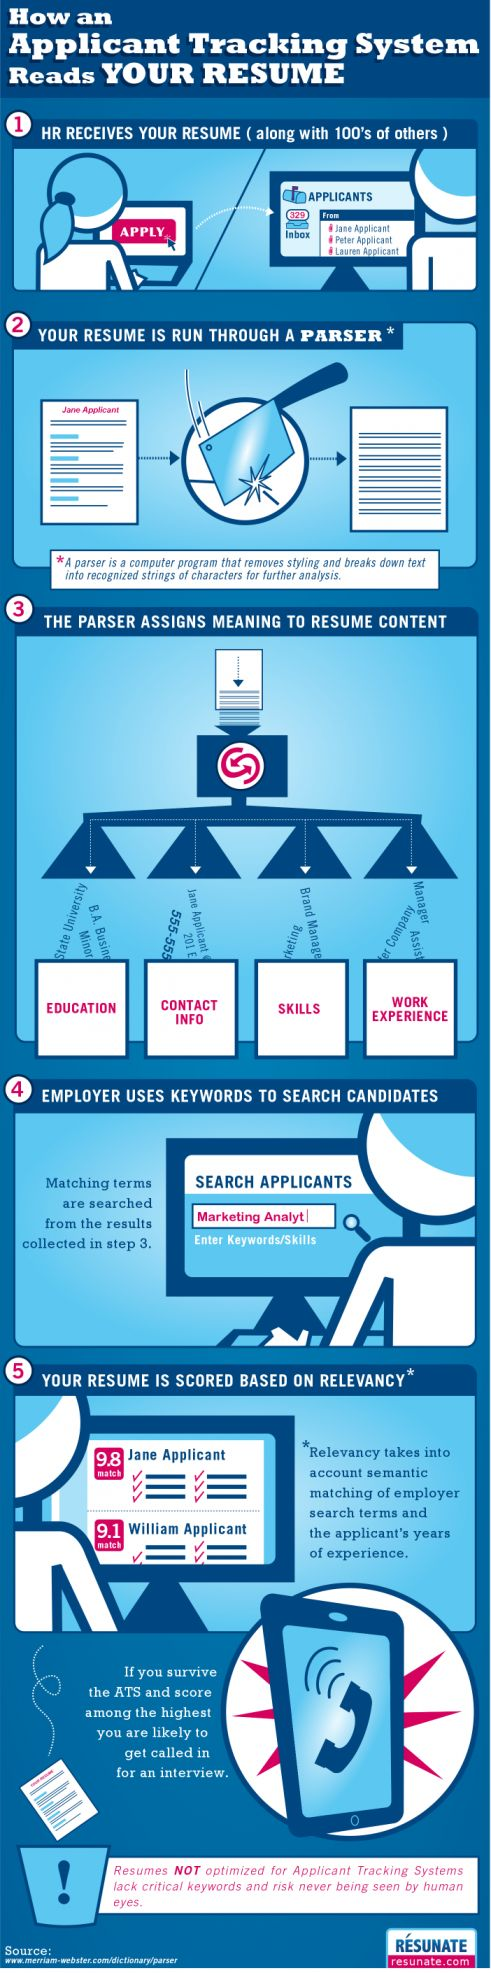 """How an ATS Reads Your Resume - NOTE: The recruiter in the graphic is searching for keyword """"Marketing Analytics"""" - it just isn't completely entered (not misspelled.)"""